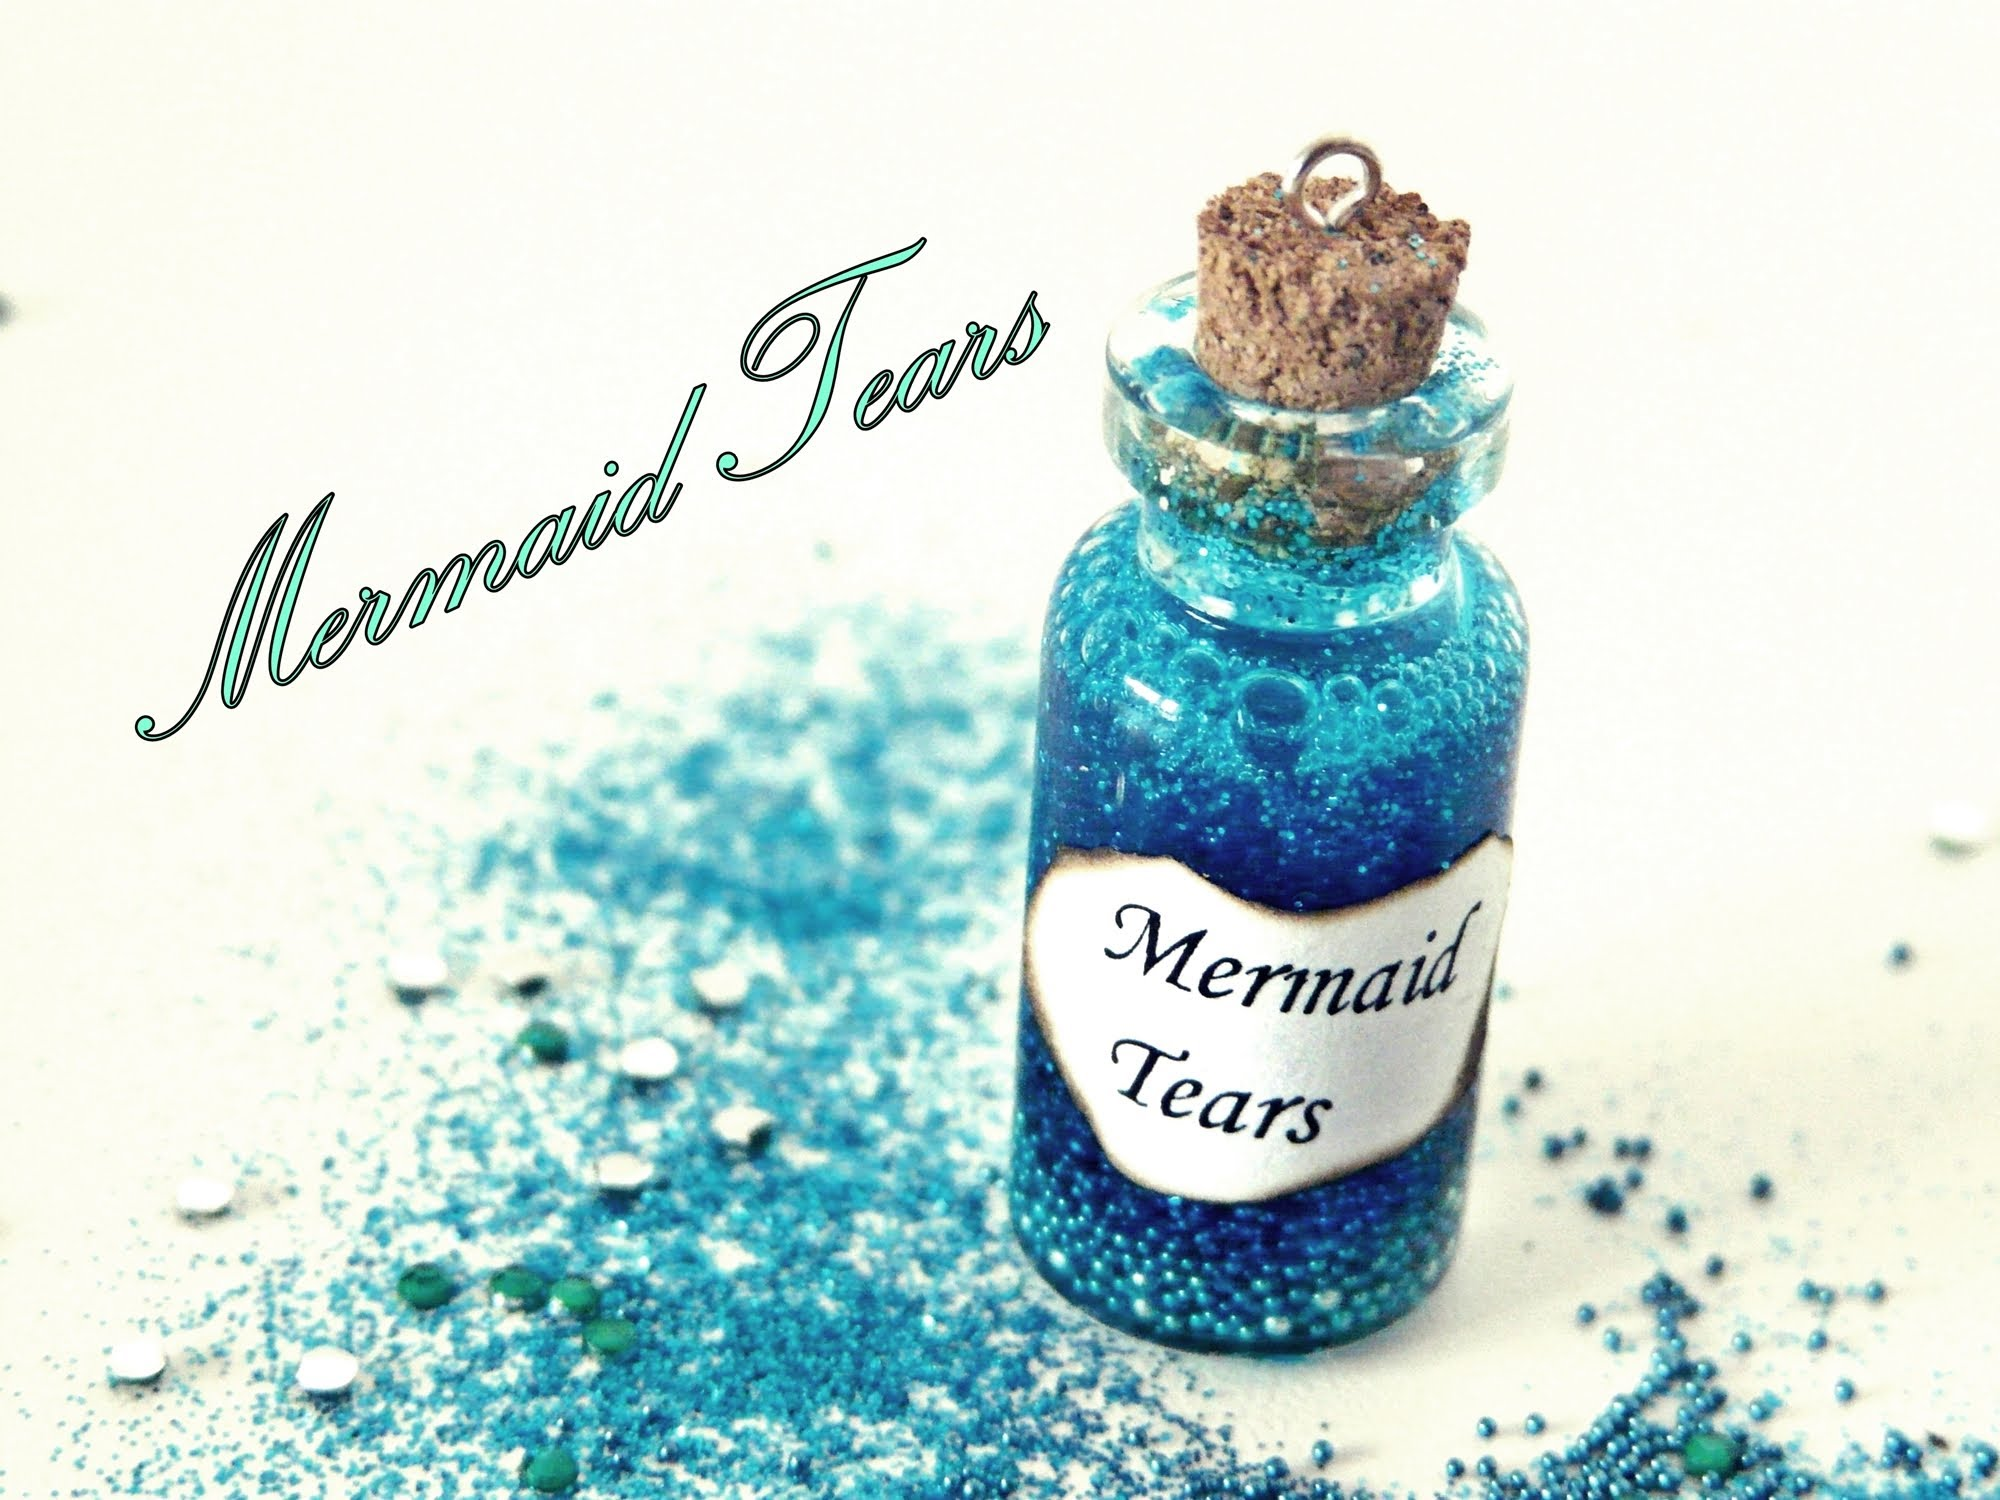 Mermaid Tears Miniature Bottle Charm - YouTube